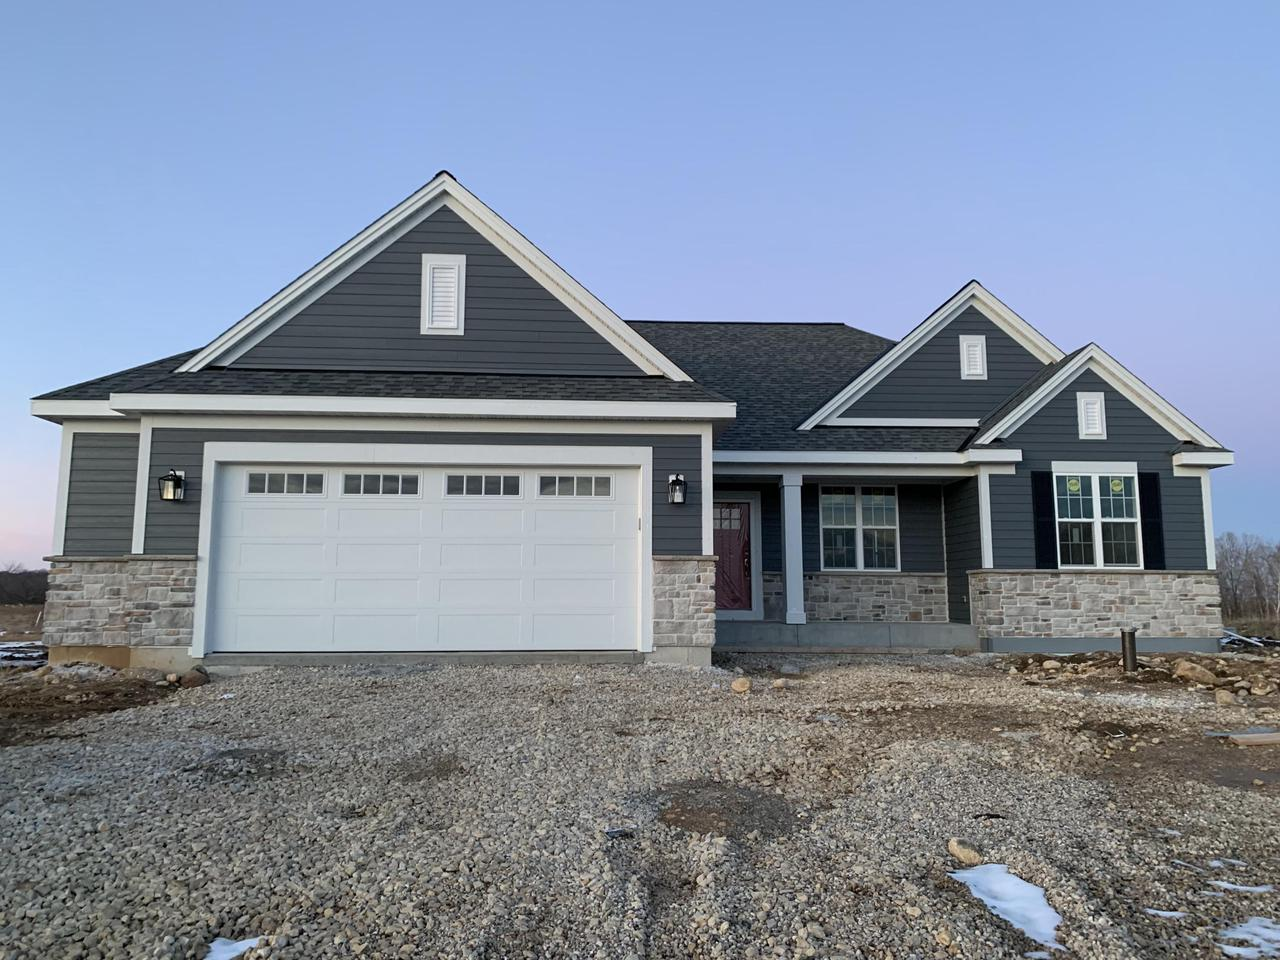 NEW CONSTRUCTION by Stepping Stone Homes. This beautiful ELLINGTON model is located in Slinger in Pleasant Farm Estates subdivision and is in the SLINGER school district! You will find superior quality in this home, 2x6 exterior framing, 8 foot garage door, electric fireplace and more! Lots of upgrades like soft close dovetail cabinetry, quartz/marble counter tops, double sinks in the bathrooms, upgraded flooring throughout and so much more. Don't forget about all the Smart Home Technology, including integrated lighting, door locks, ecobee thermostat, video door bell, Lift Master garage door opener, Samsung Connected Touch Screen Family Hub refrigerator, all of which you can control from your phone!  Located on a large lot with easy access to the highway, perfect for the commuter.